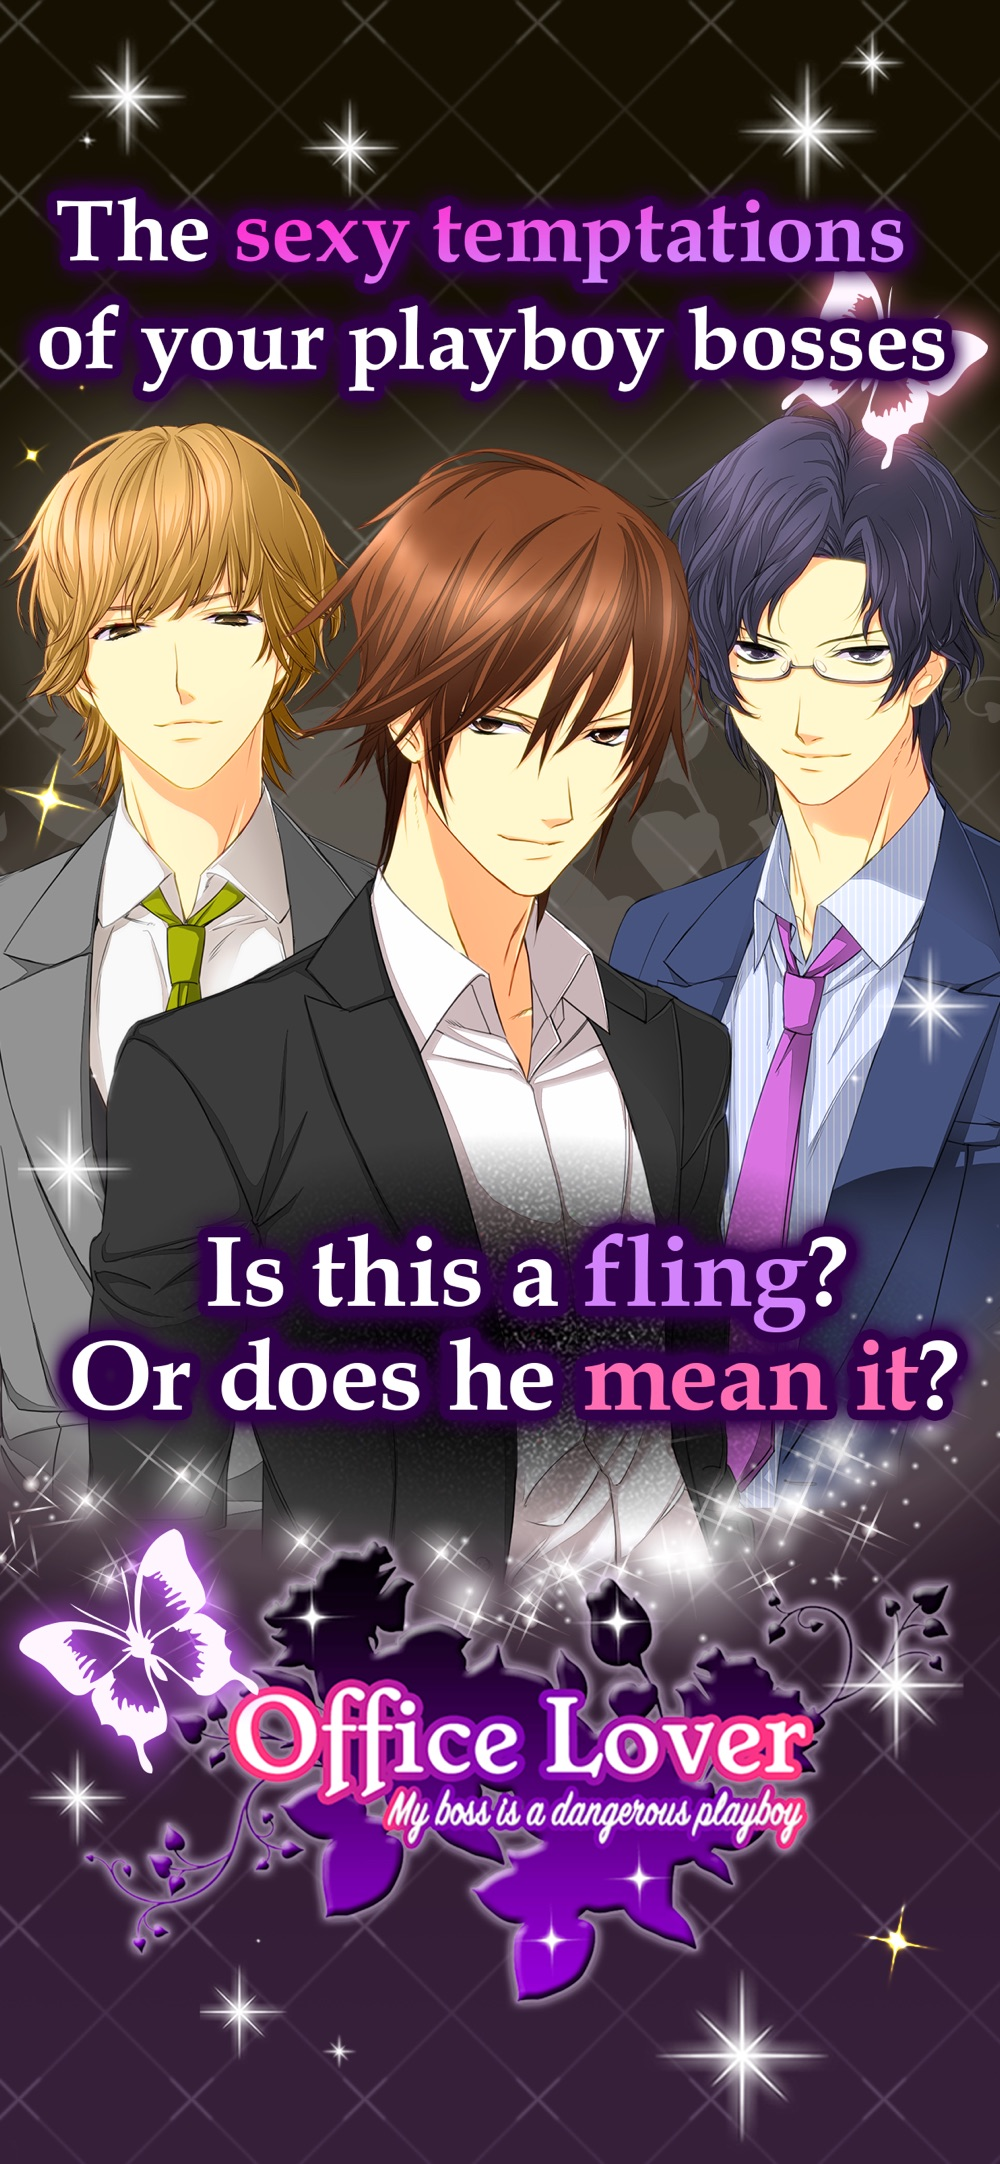 Office Lover -Otome dating sim hack tool